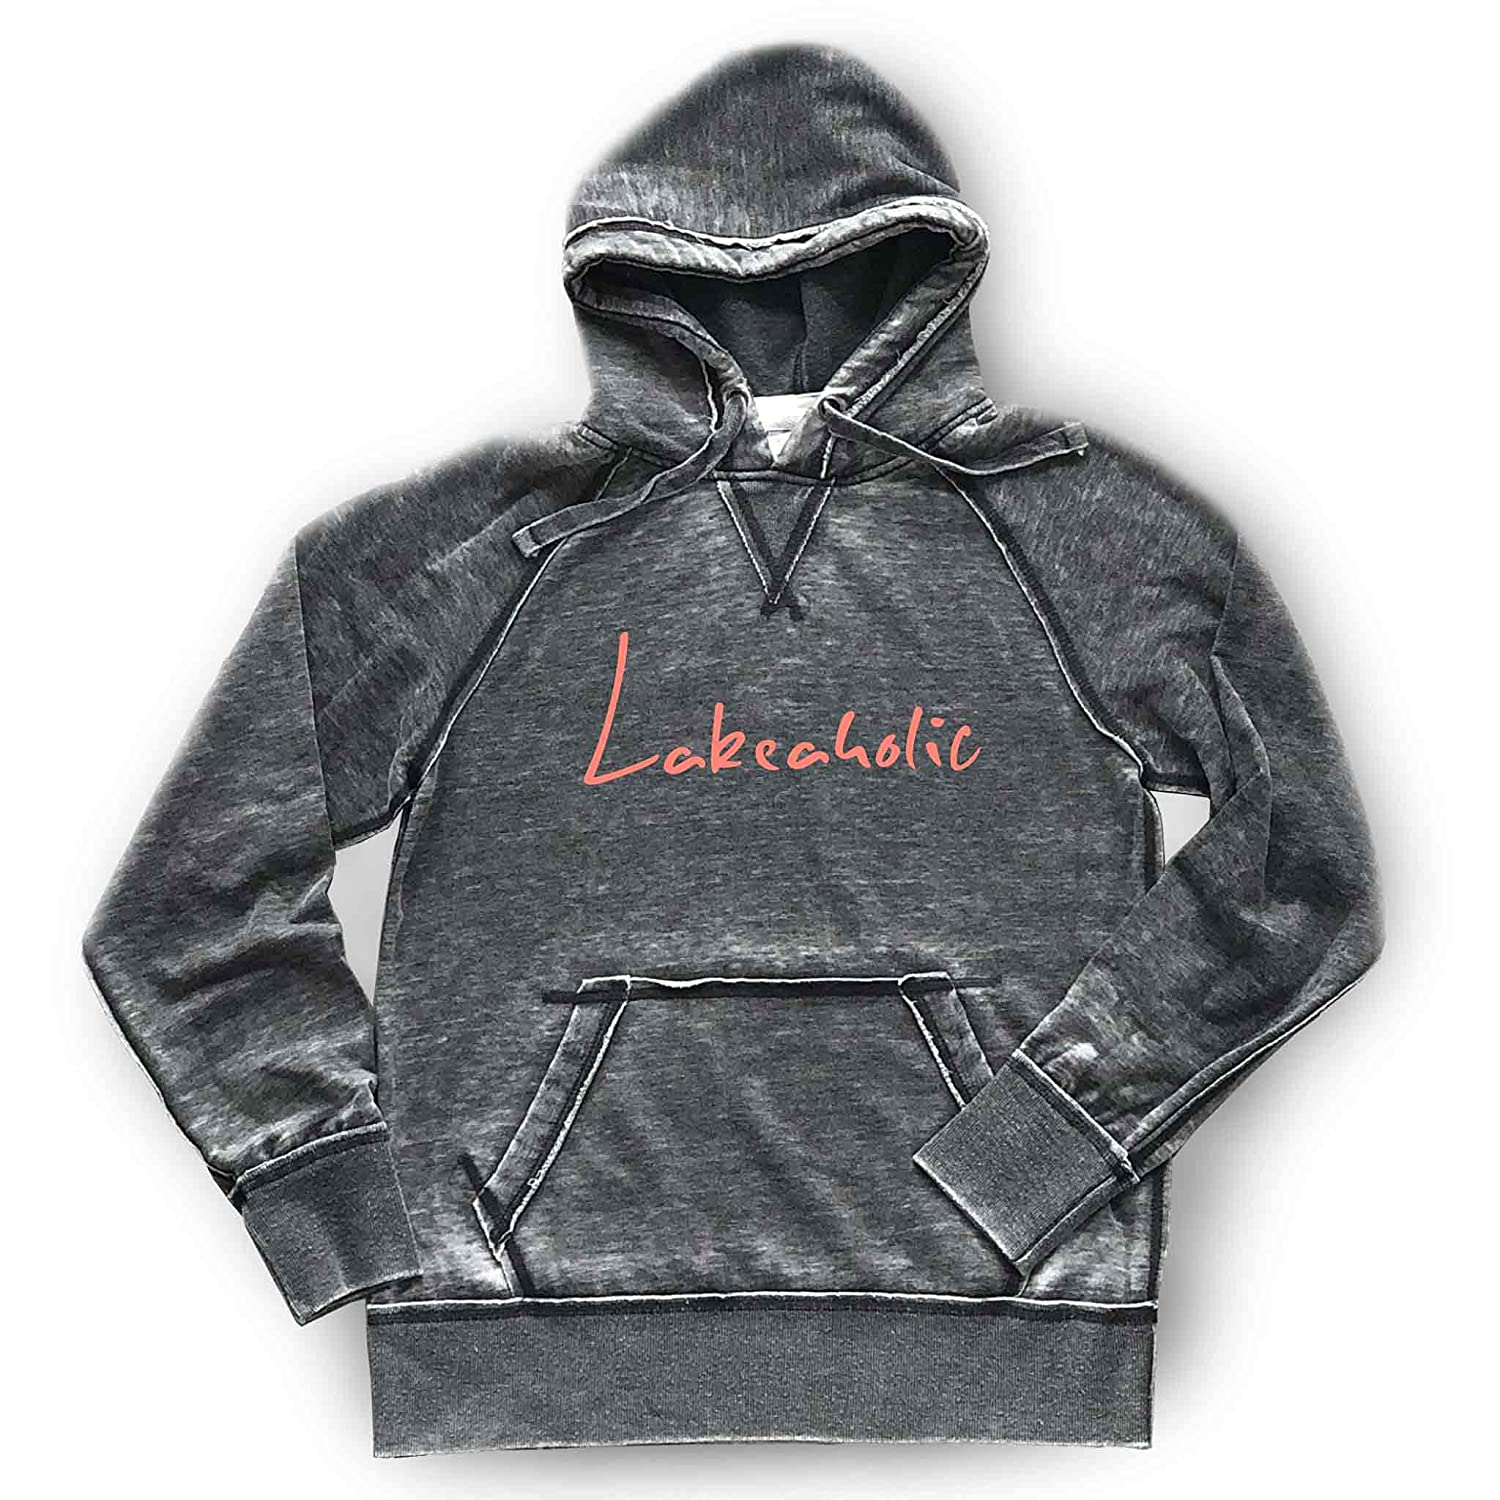 Lakeaholic Hoodie Bonfire Soft Lightweight Animer and price revision Ranking TOP5 Burnout Hooded